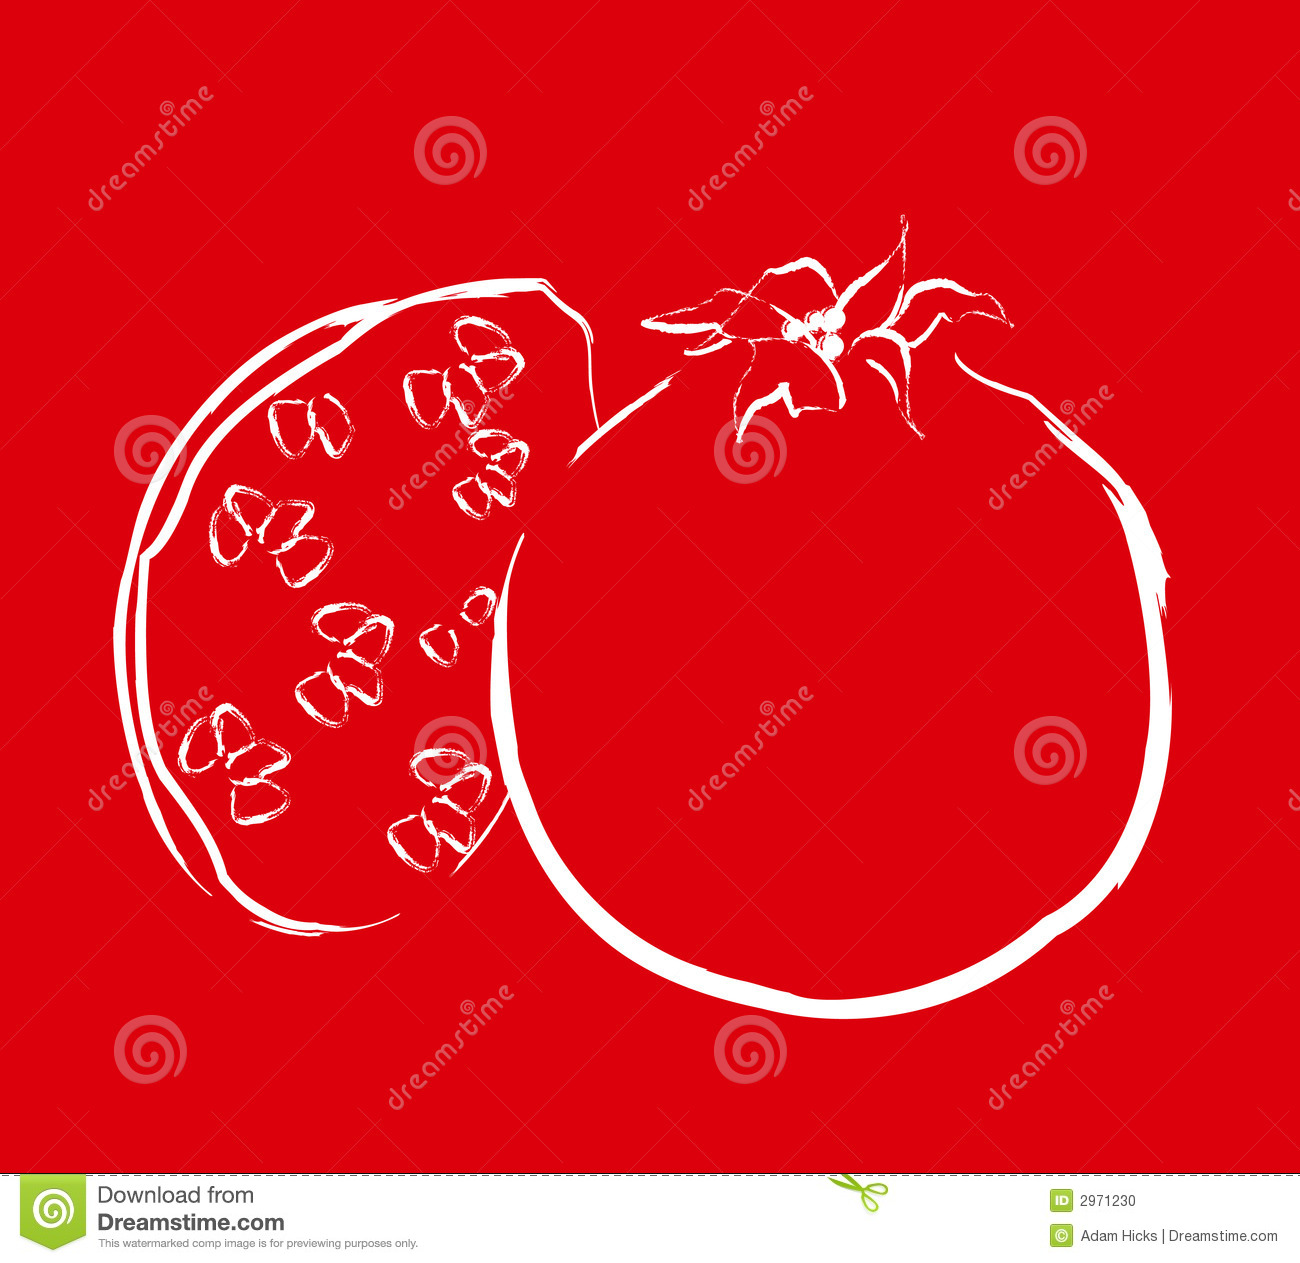 pomegranate-red-2971230.jpg